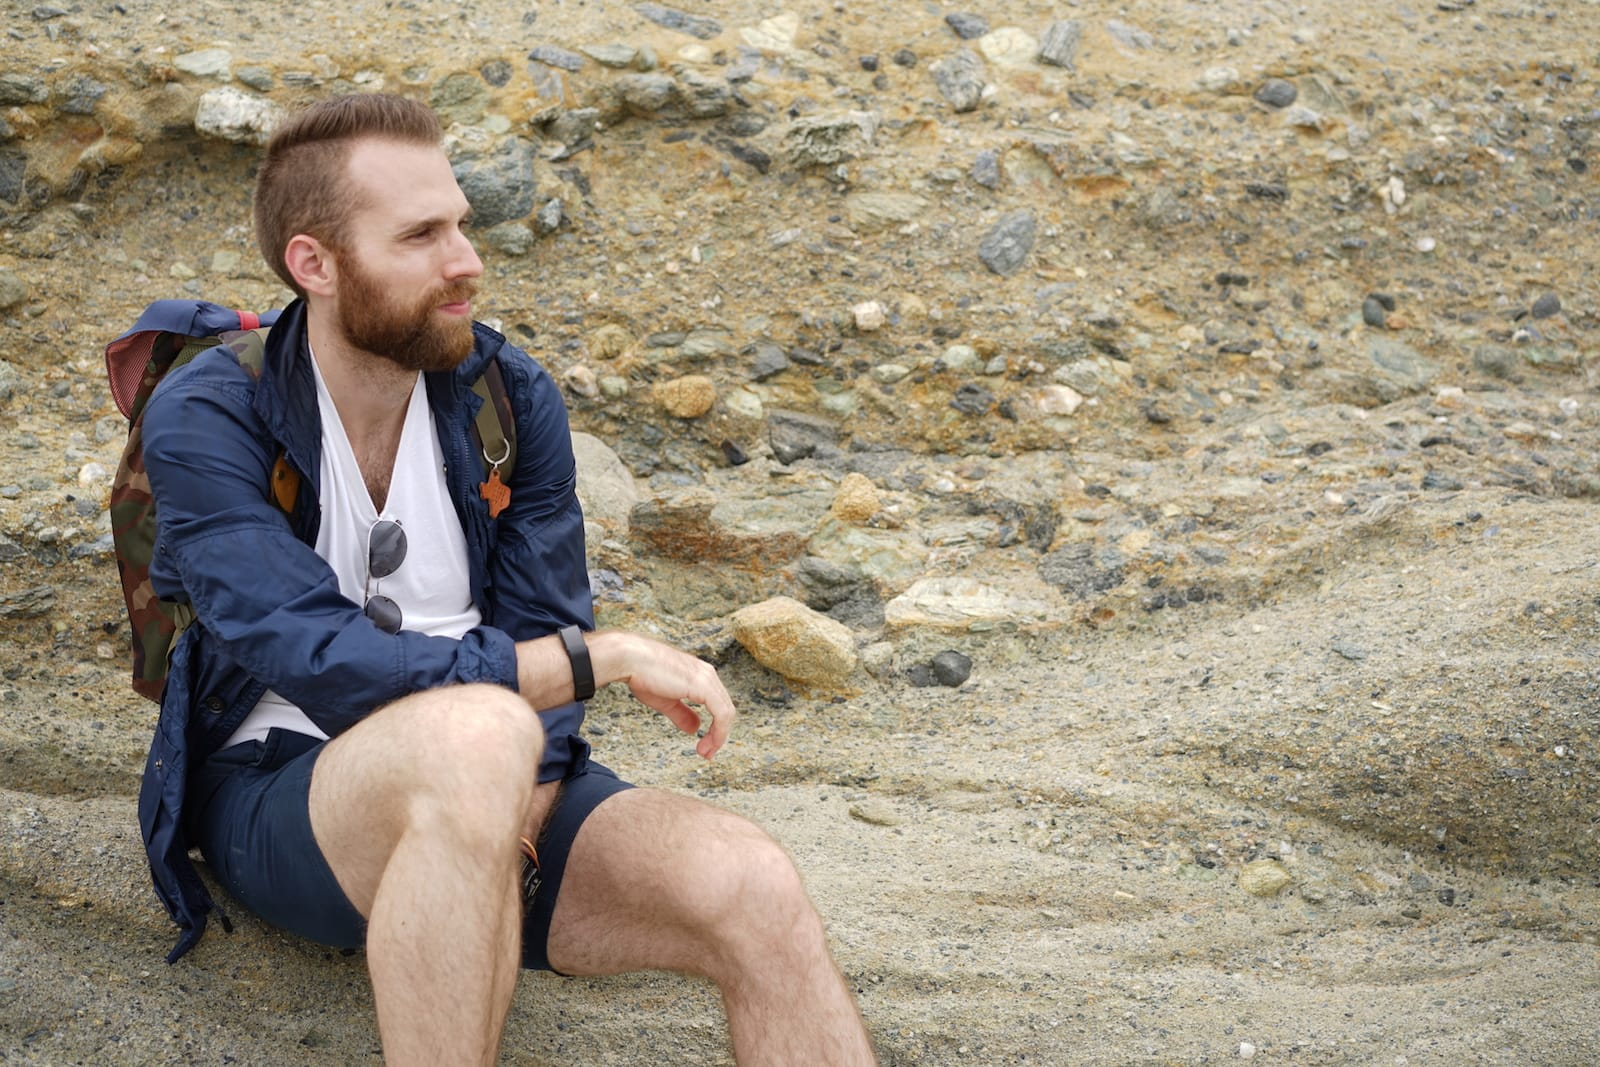 Adam sitting on a beach in Malibu